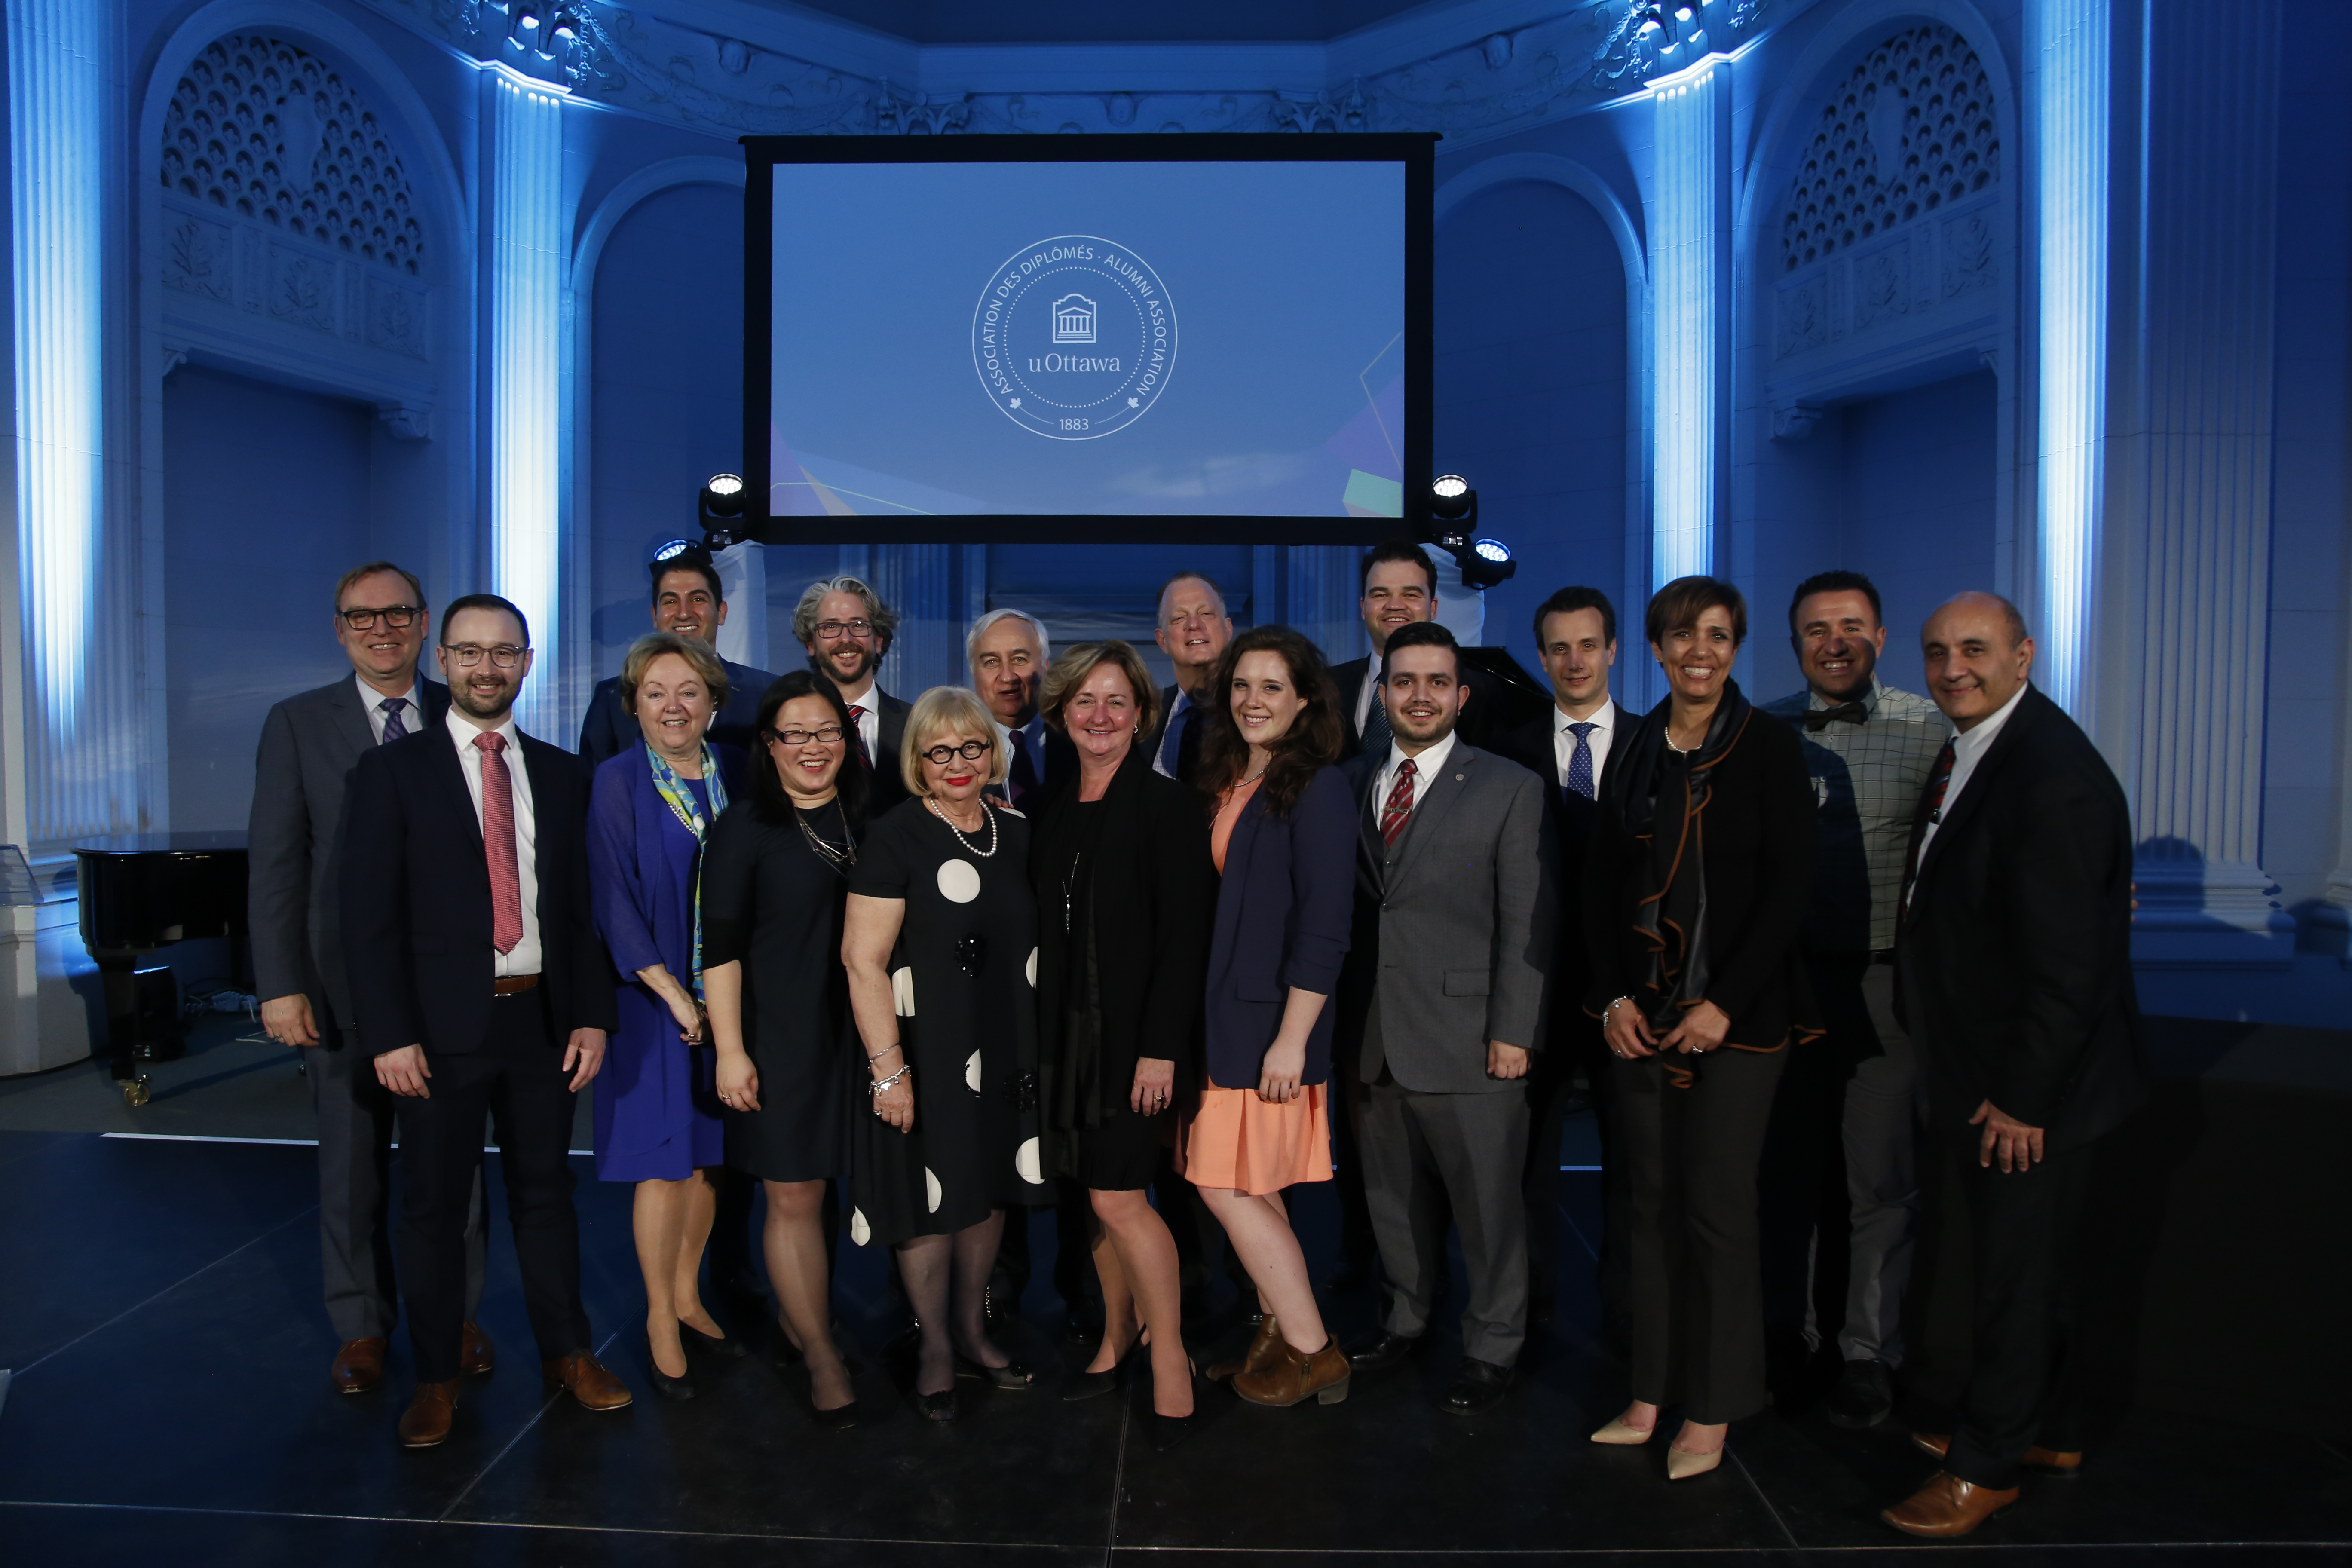 Photo of current members of the Alumni Association